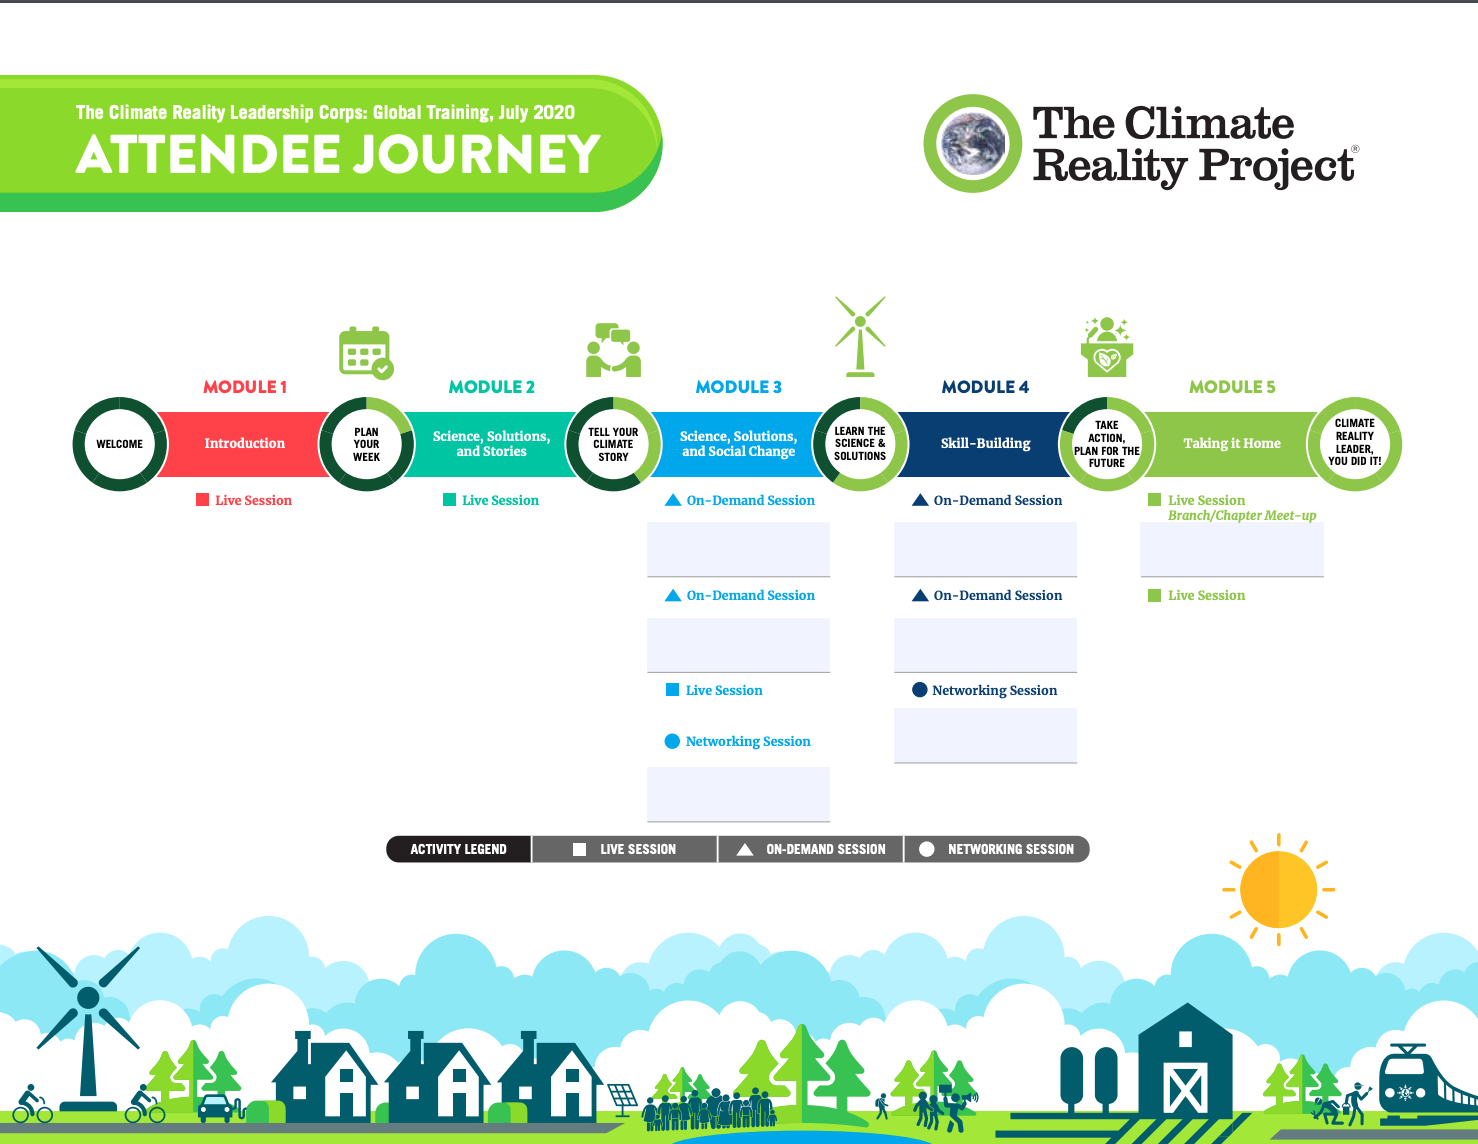 The Climate Reality Project attendee journey infographic.